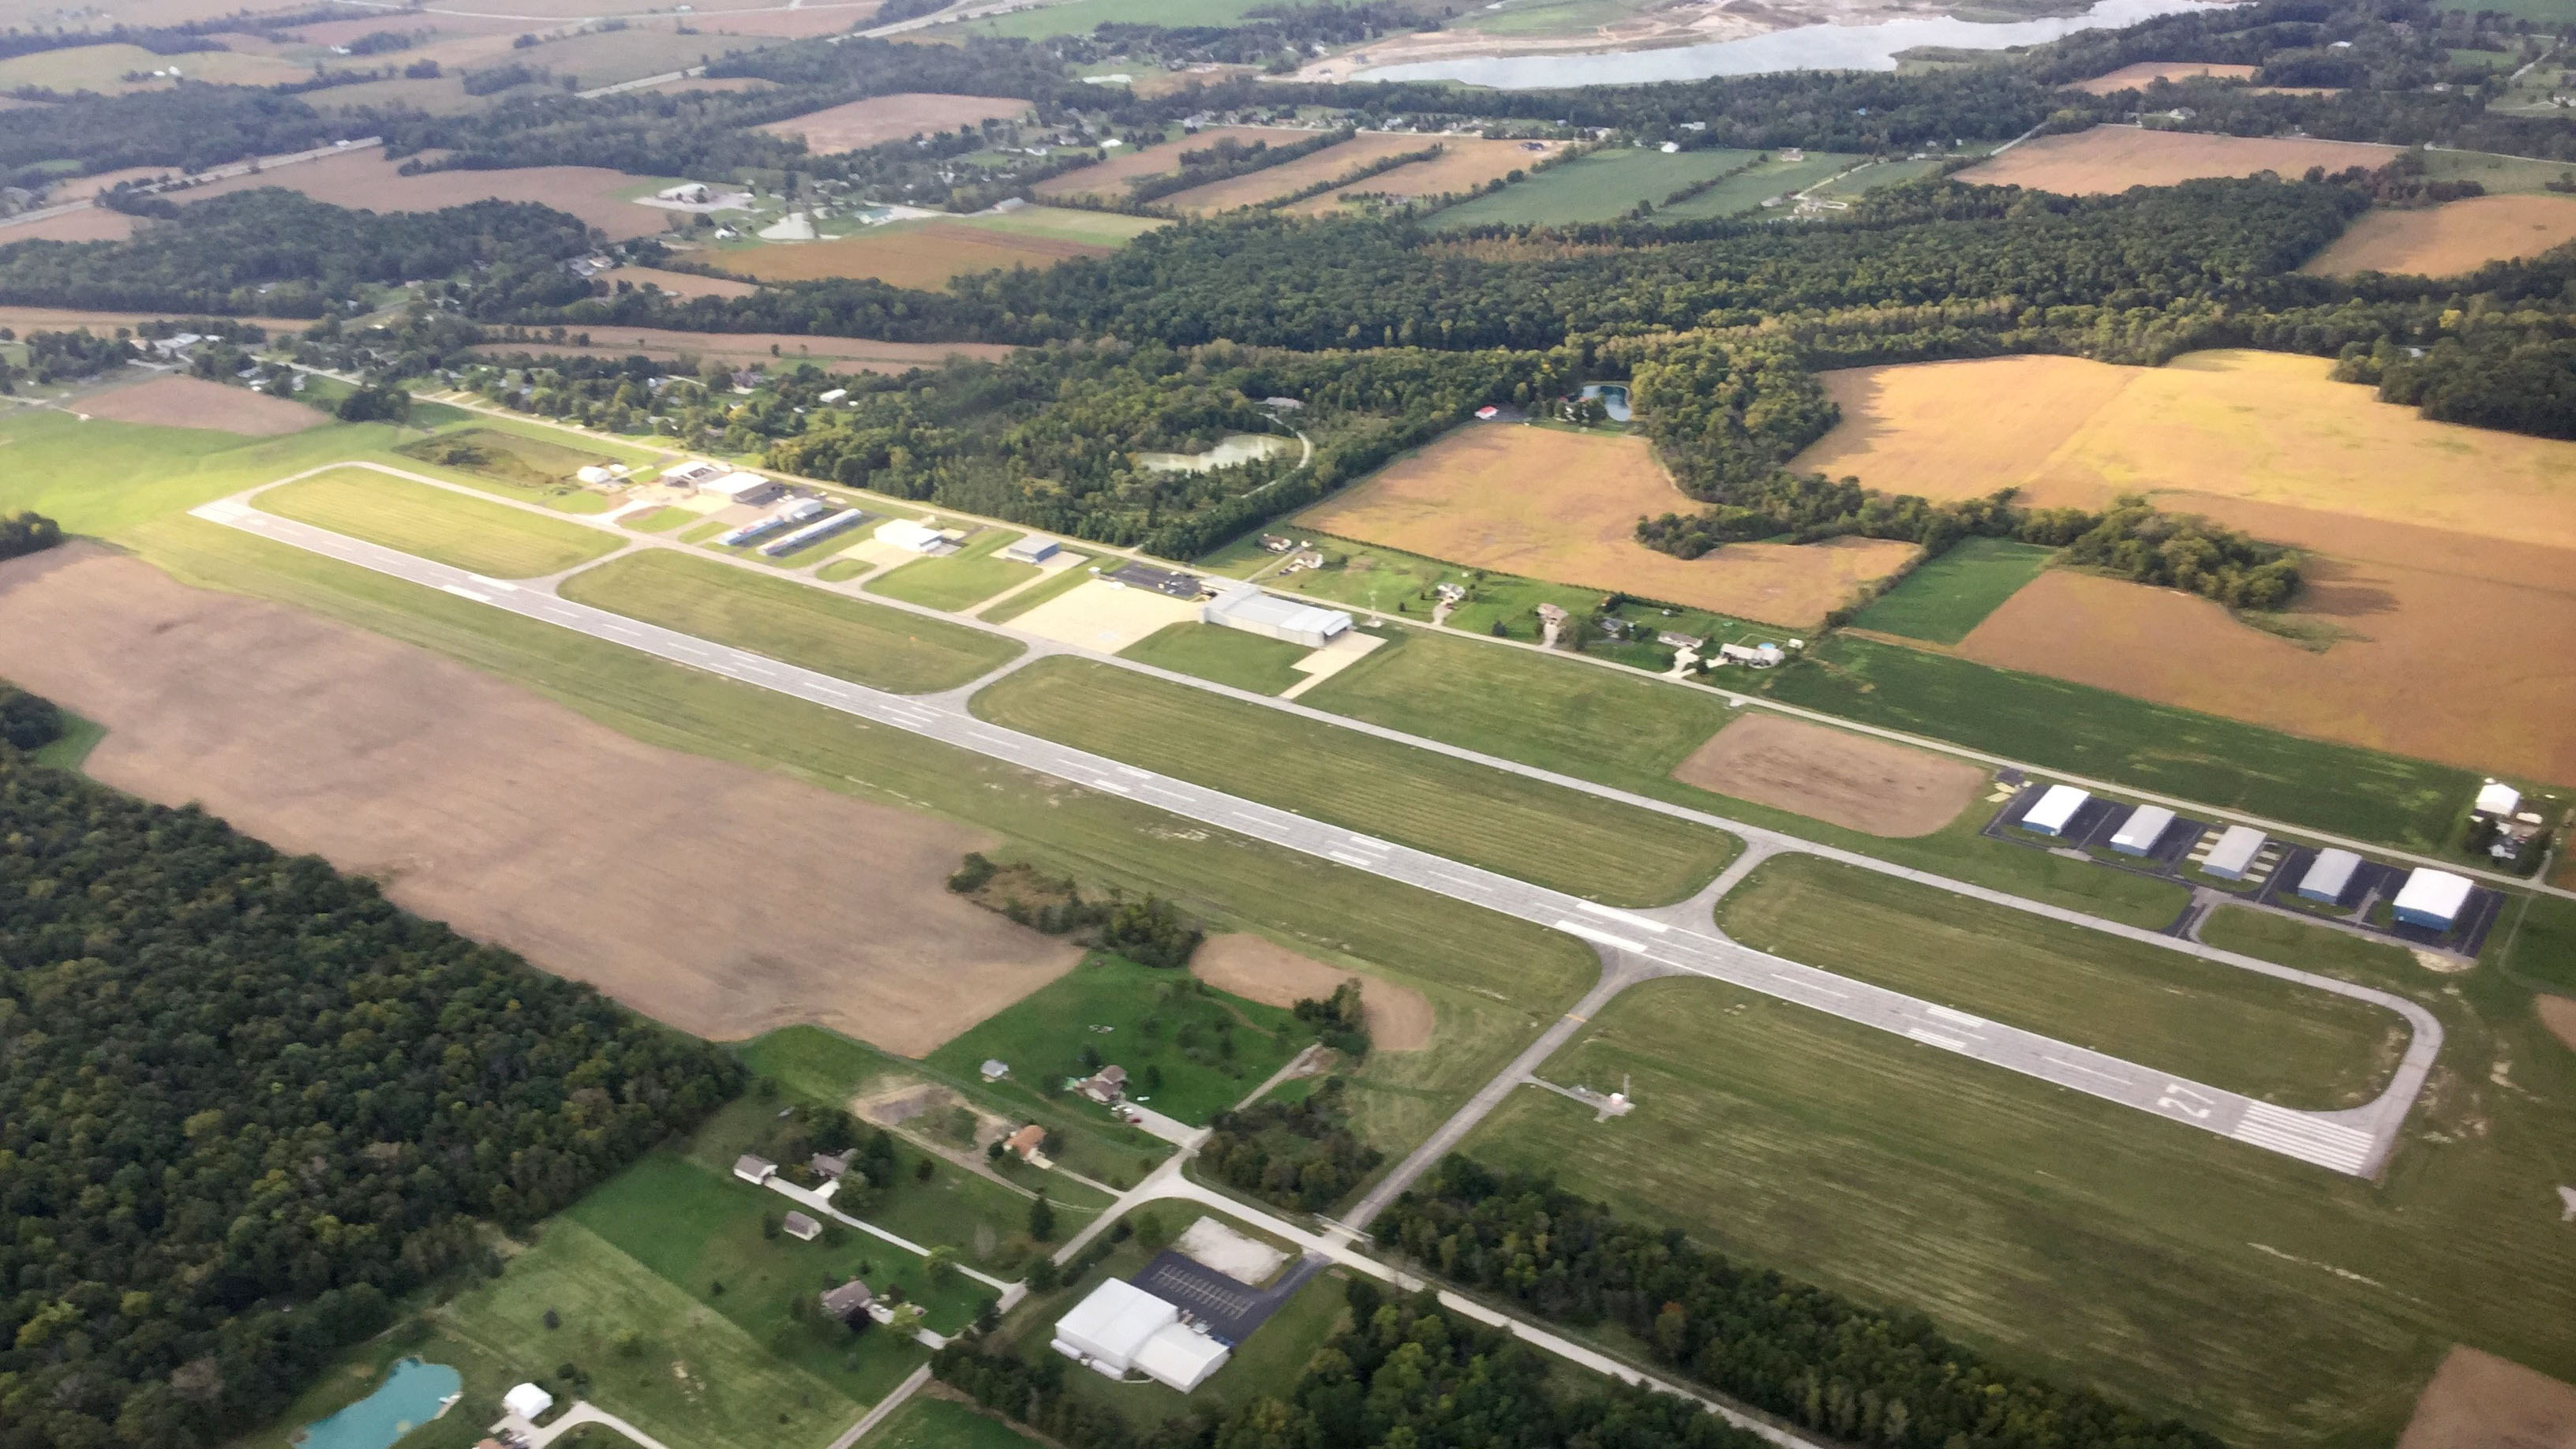 DeKalb County Airport in Auburn, Indiana, is just four miles from the Auburn Cord Duesenberg Automobile Museum. Photo by Jason Cobb.